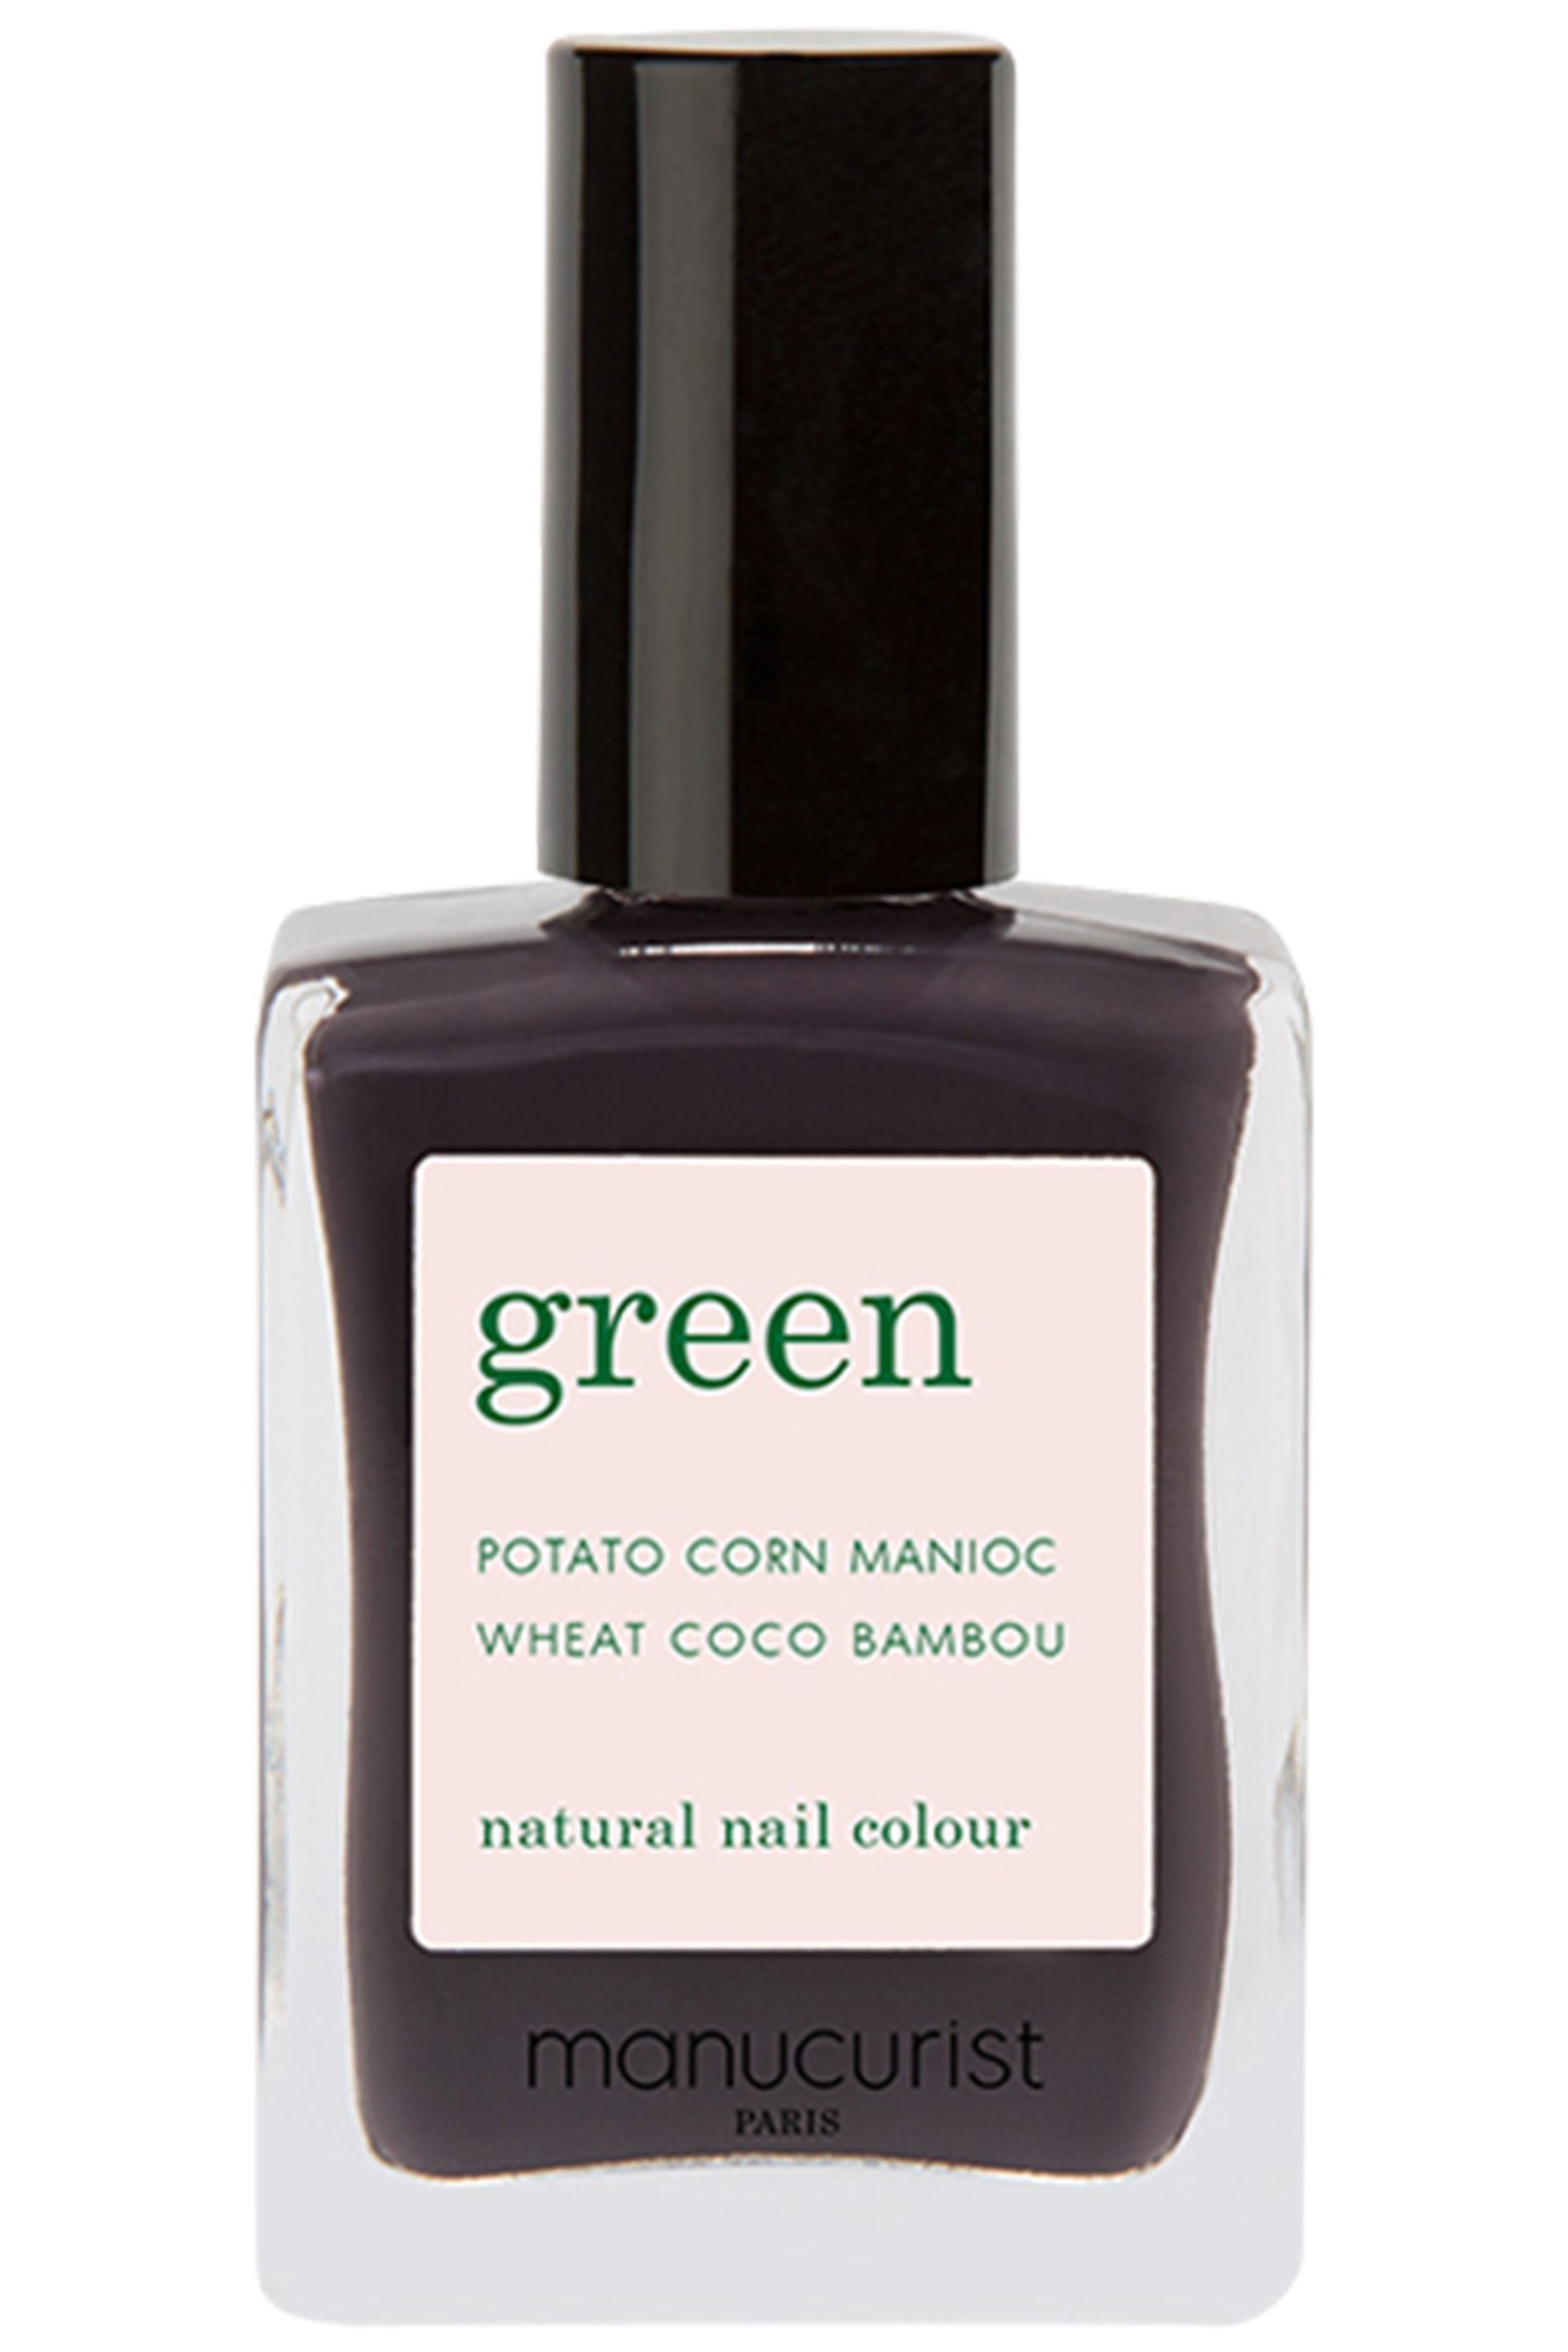 Blissim : Manucurist - Vernis Green - Queen of the Night